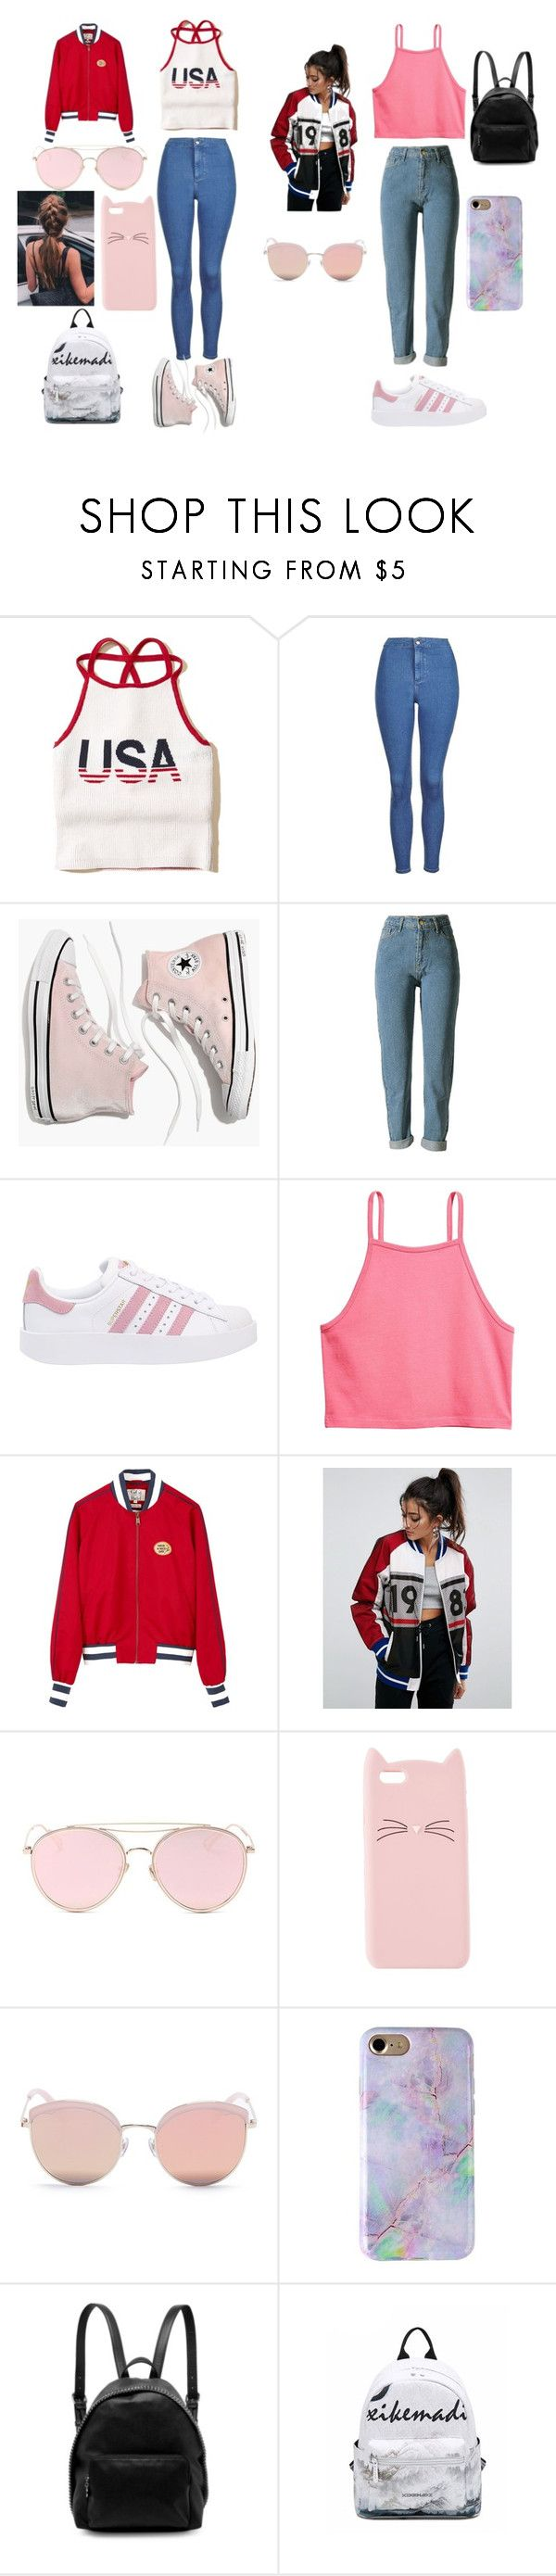 """""""FASHIONS new 2017"""" by karlabelenromanjara on Polyvore featuring Hollister Co., Topshop, Madewell, WithChic, adidas Originals, Tommy Hilfiger, ASOS, LMNT, Charlotte Russe y Stephane + Christian"""